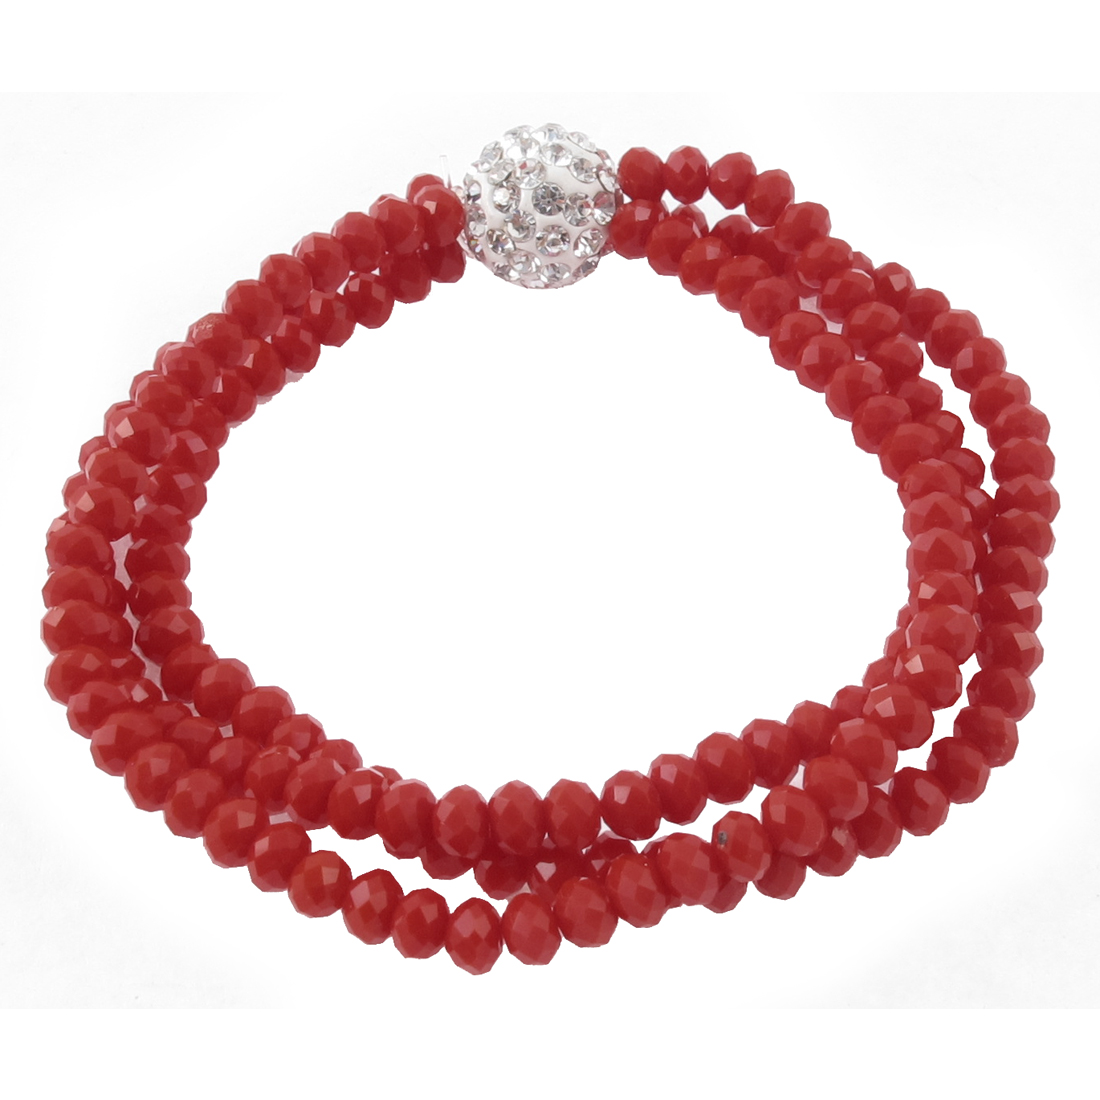 Rhinstone Inlaid Round Bead 3 Layers Elastic Wrist Bracelet Red